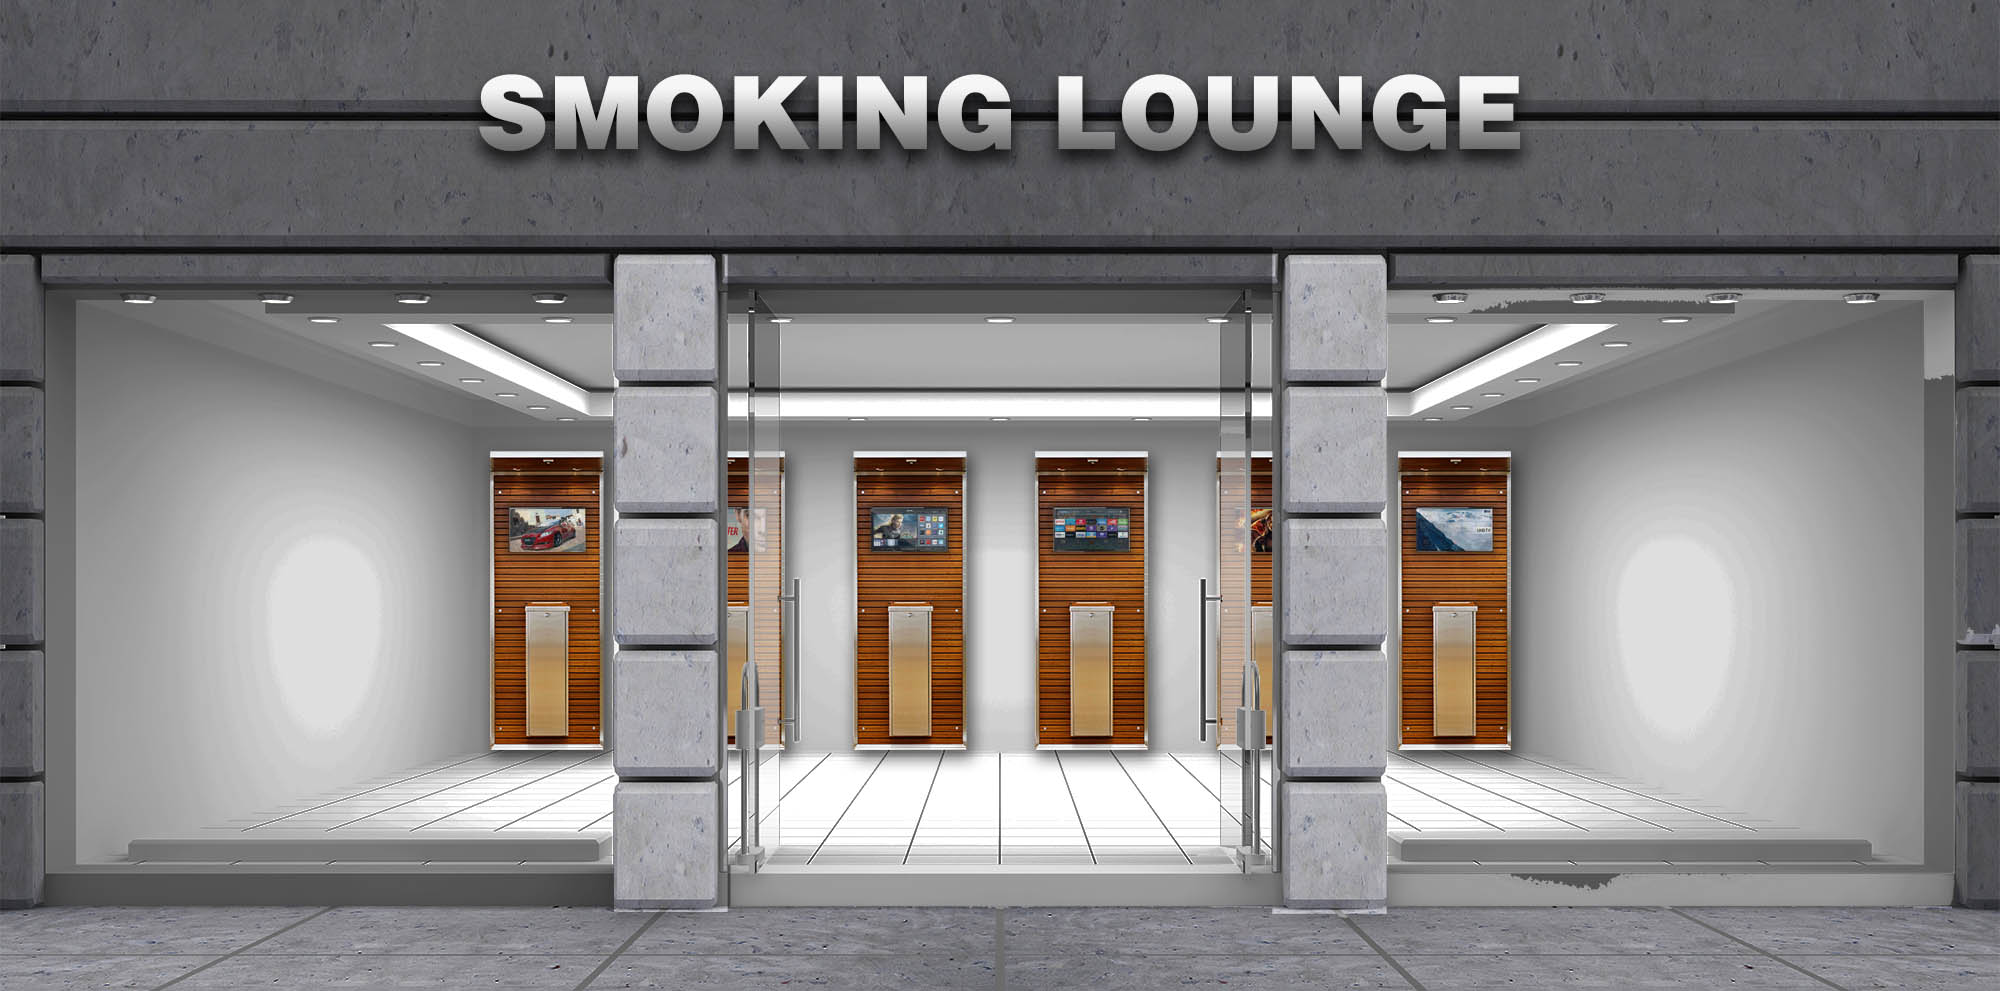 Smoking Lounge